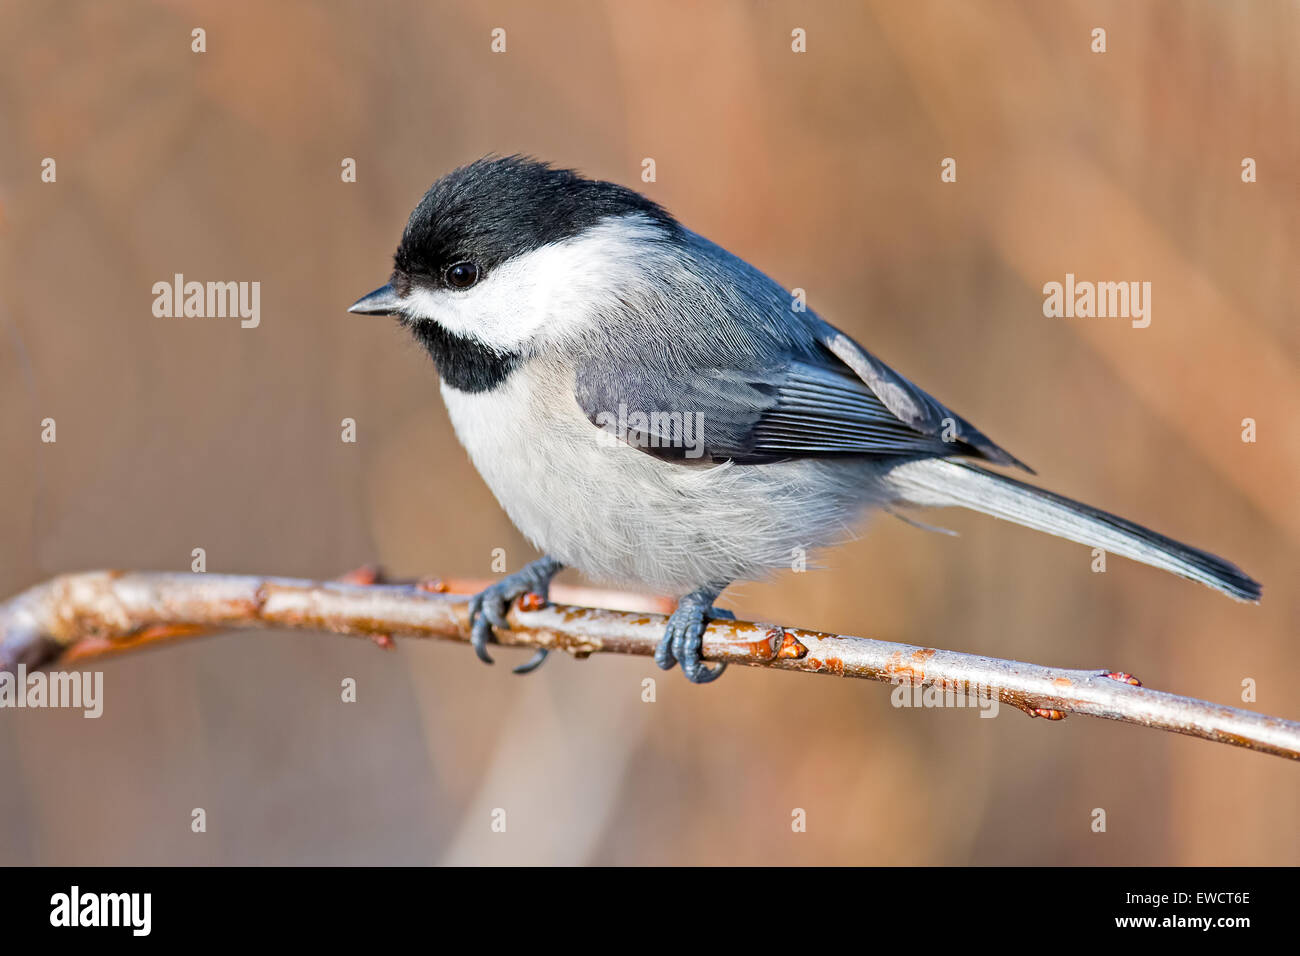 Carolina Chickadee sitting on Branch - Stock Image